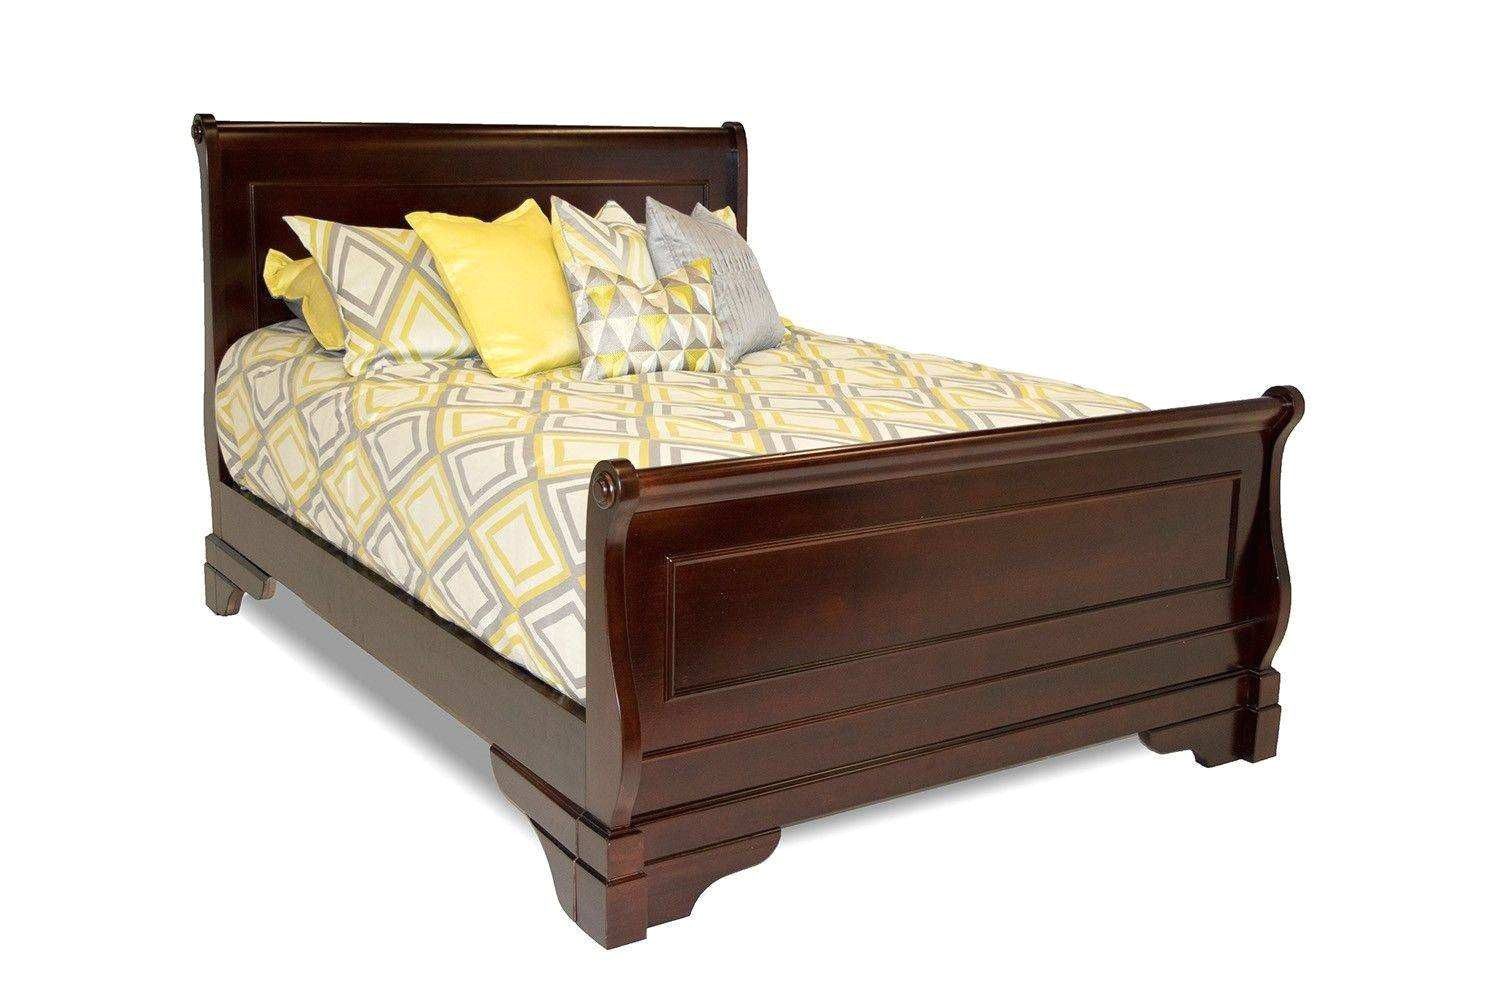 eastern king bed frame lovely cal king bedroom furniture set lovely versailles cal king bed in